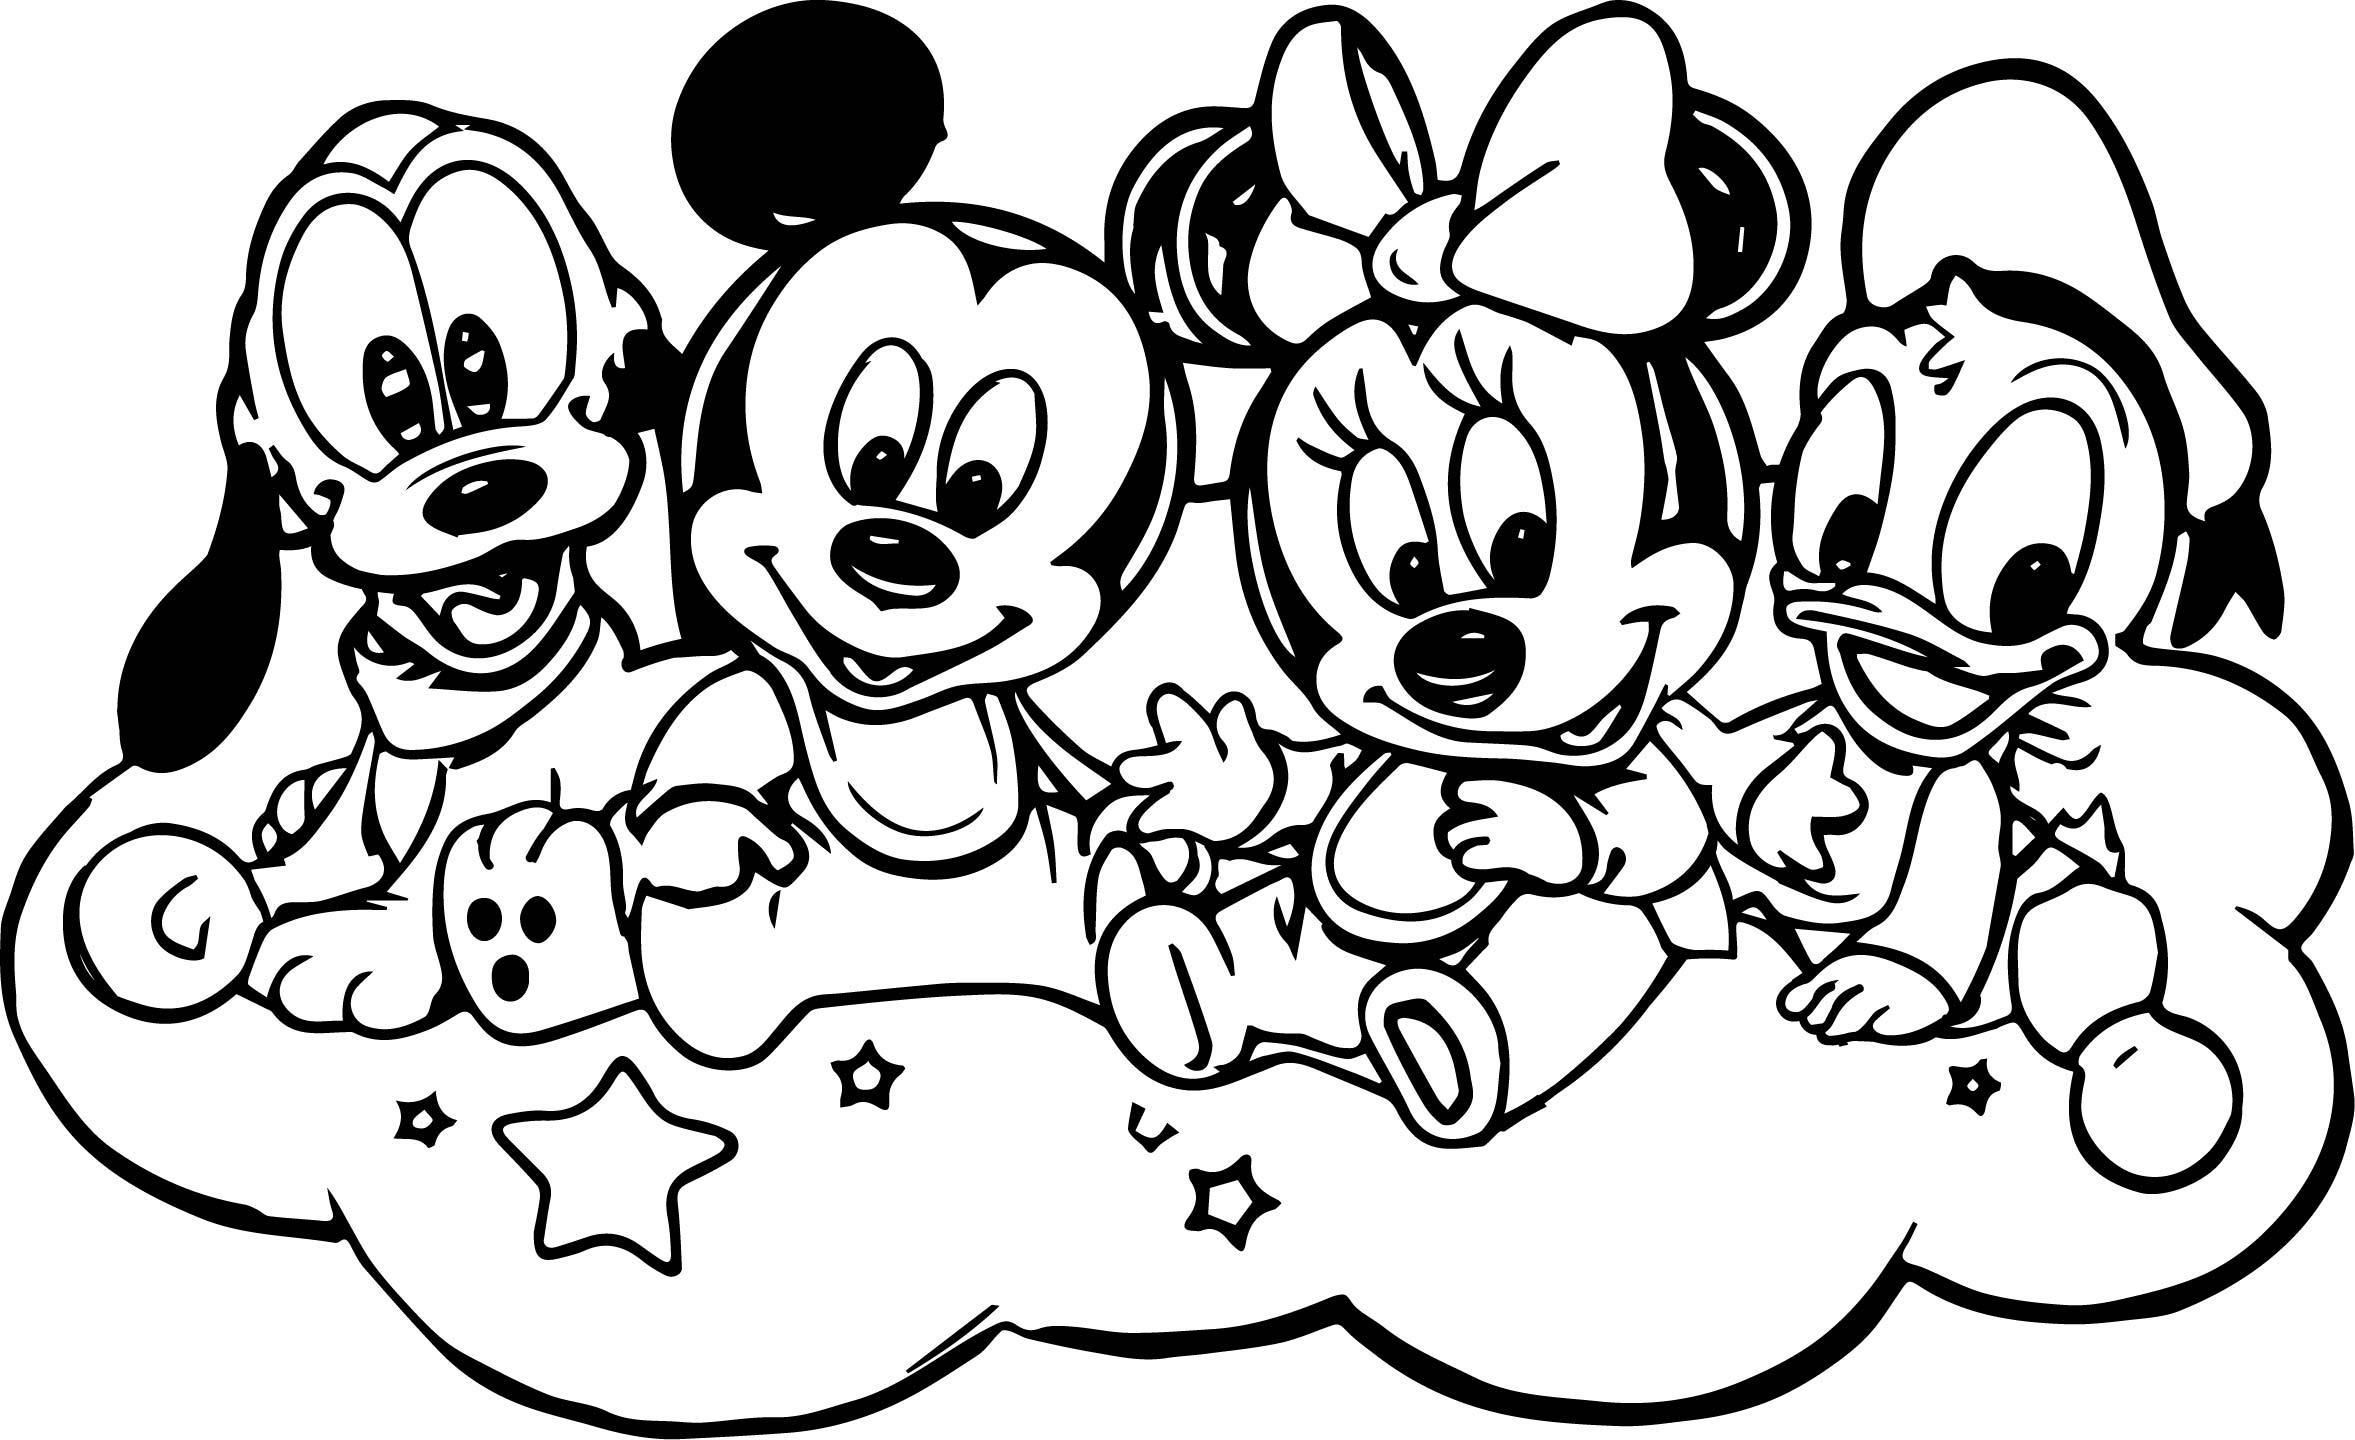 38 Disney Coloring Pages Mickey Mouse And Friends In 2021 Mickey Mouse Coloring Pages Mickey Coloring Pages Disney Coloring Pages